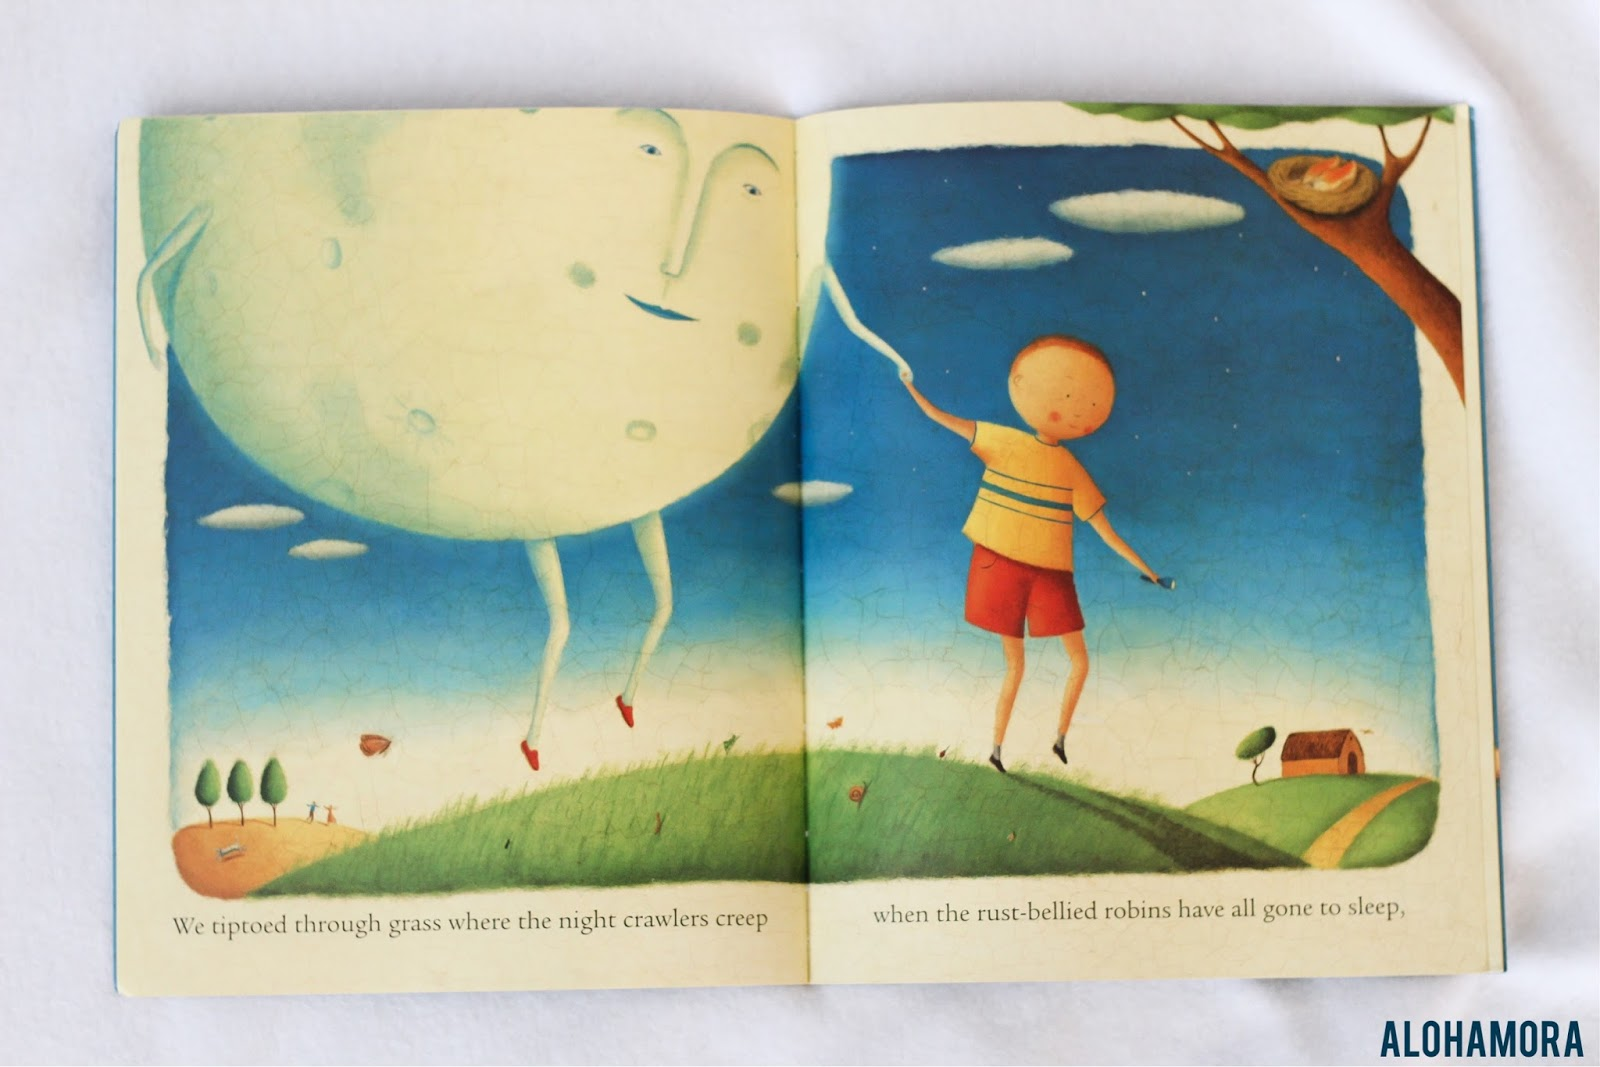 Alohamora: Open a Book: I Took the Moon for a Walk gets 4 Stars ...